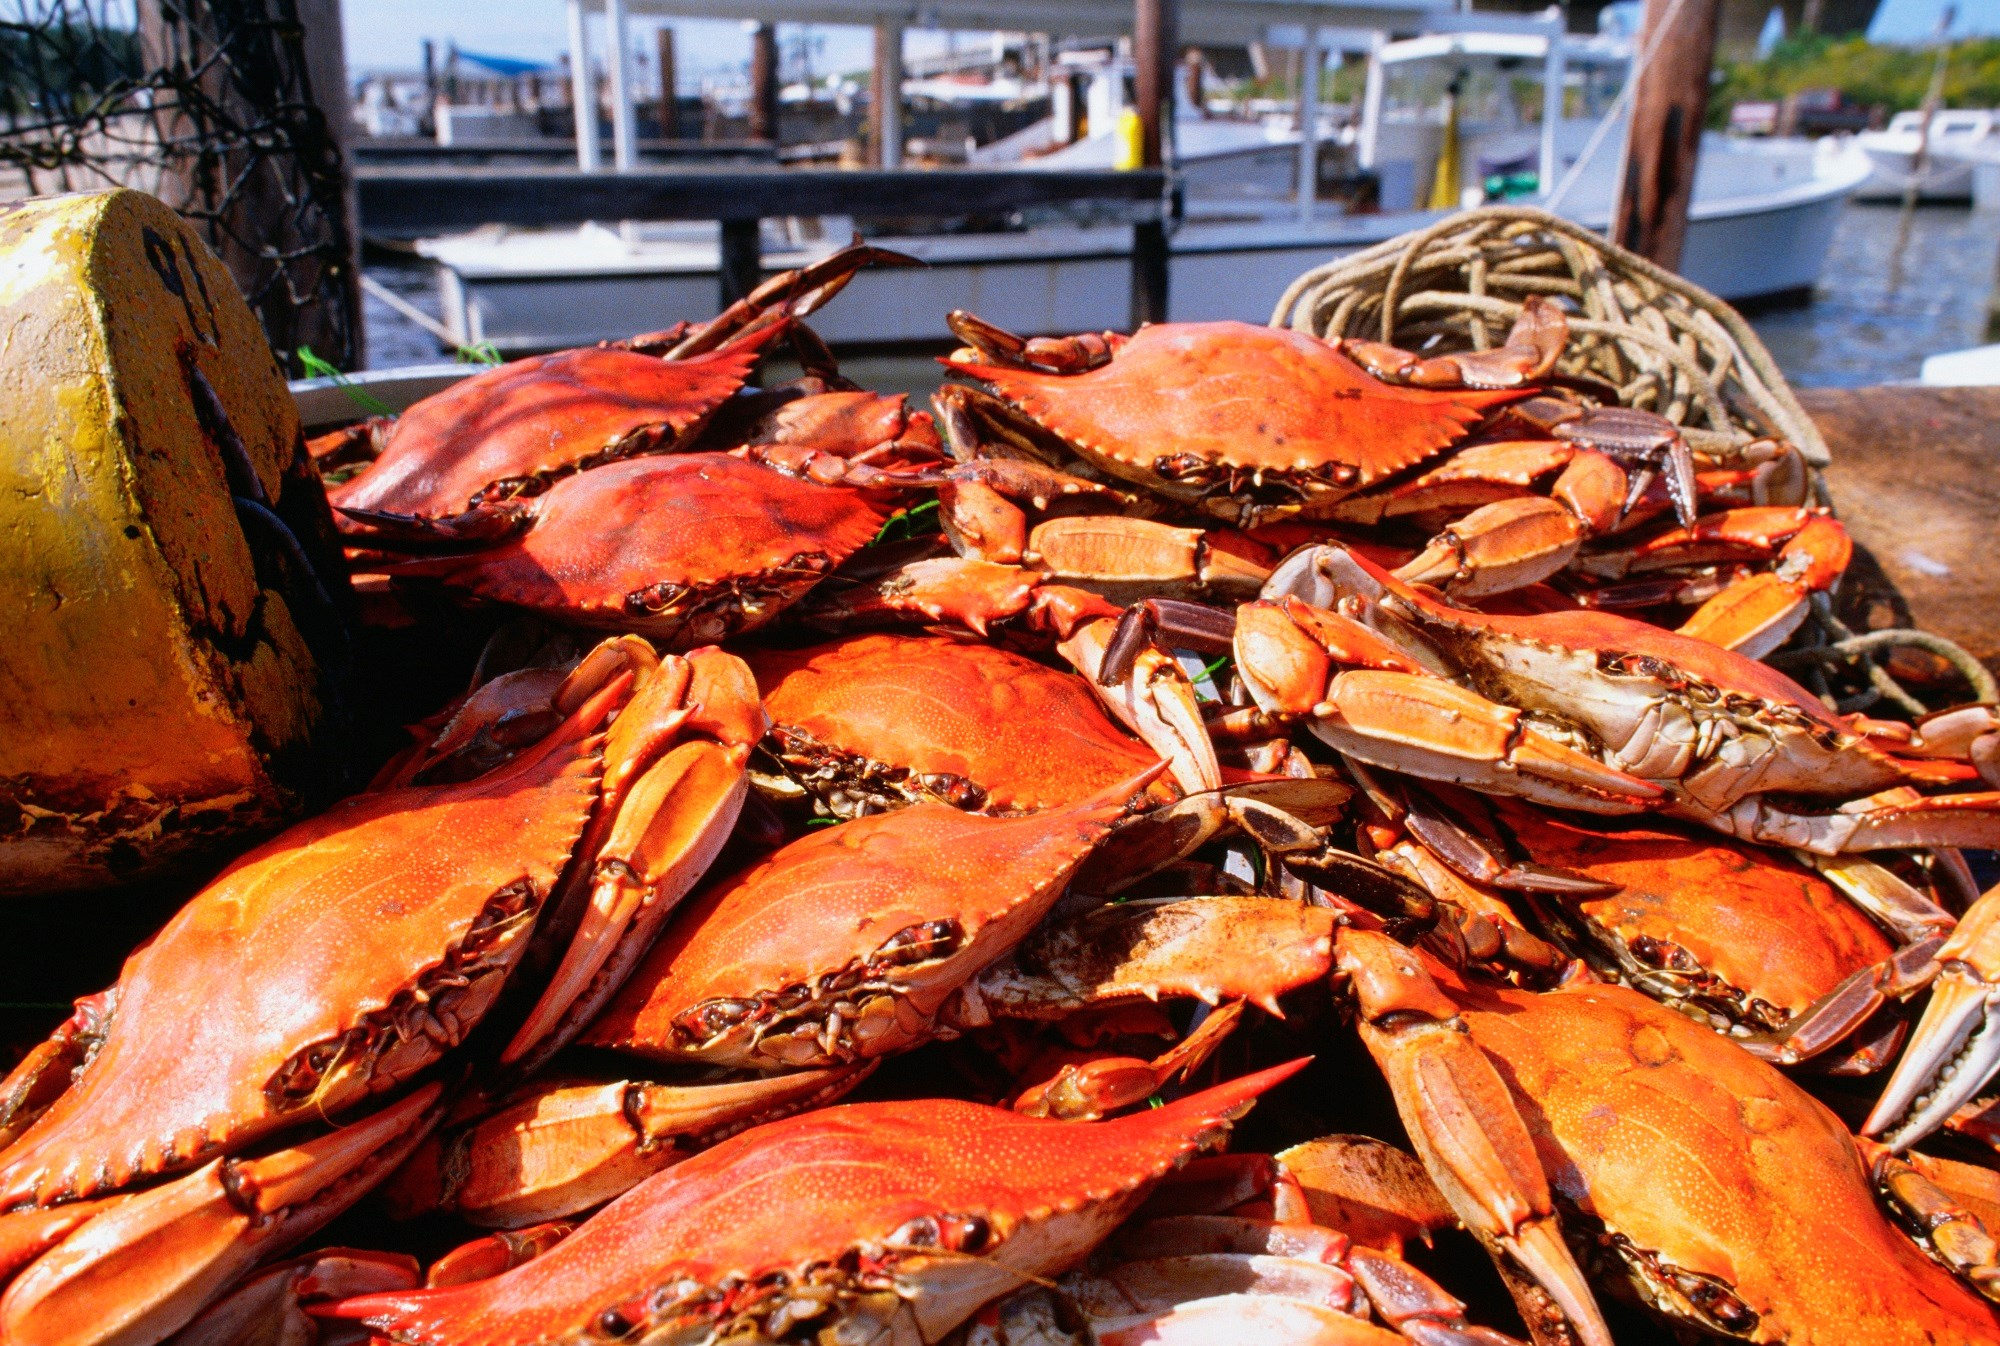 FDA: Illnesses Tied to Fresh Crab Meat Imported From Venezuela